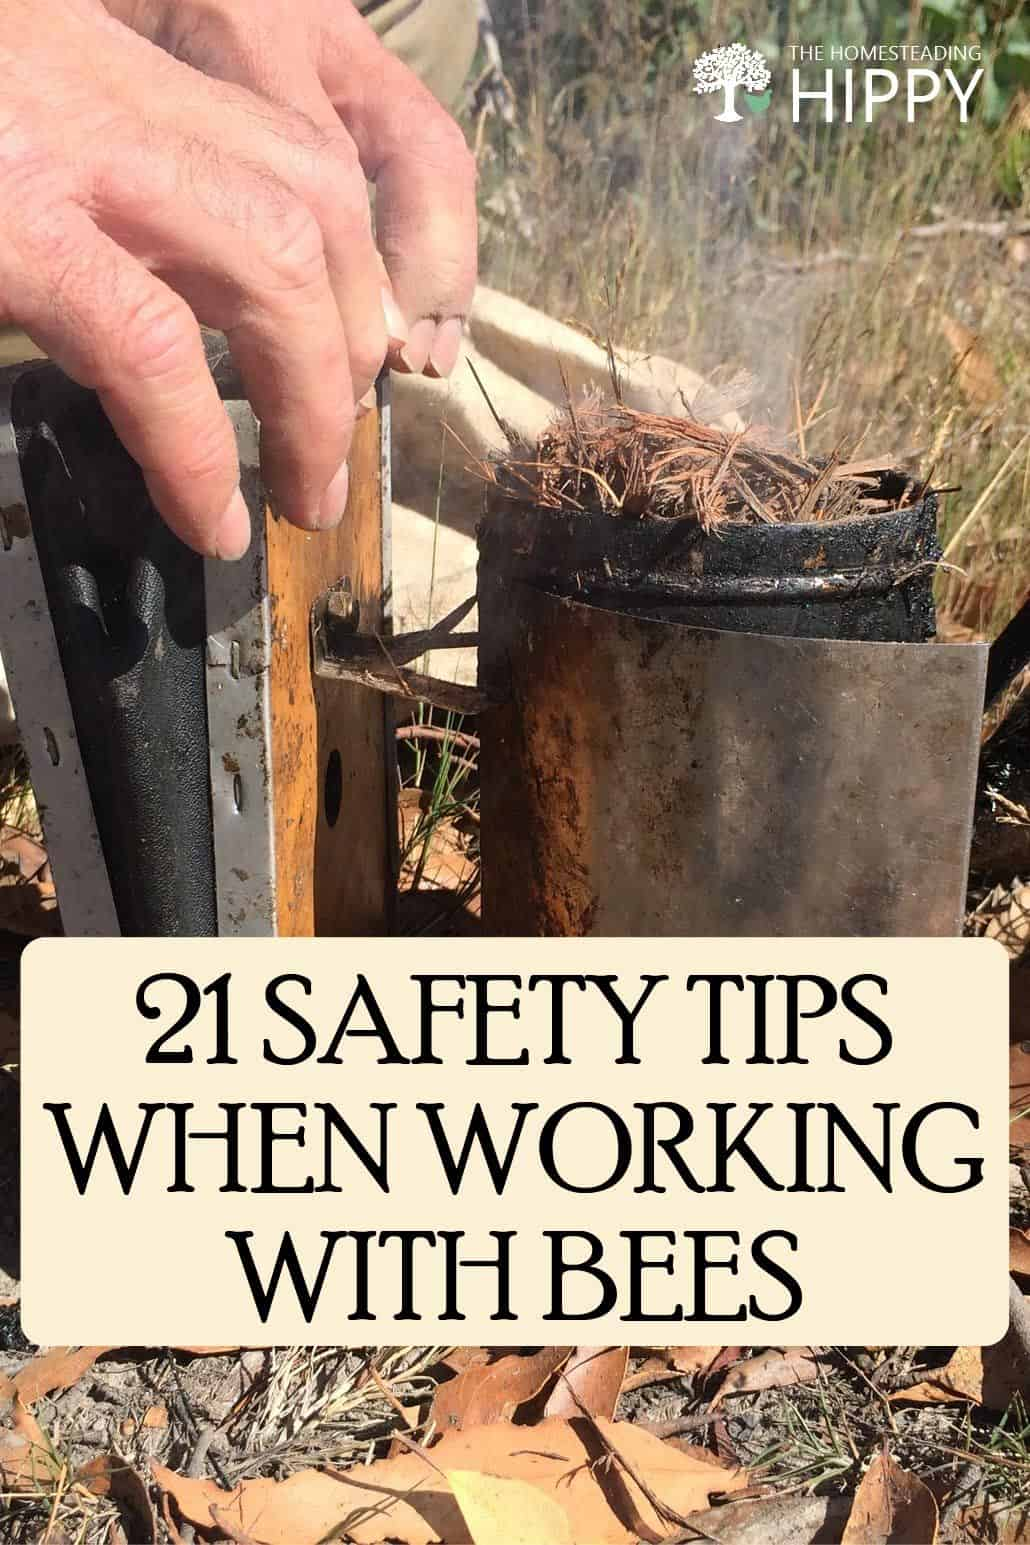 bees safety tips pin